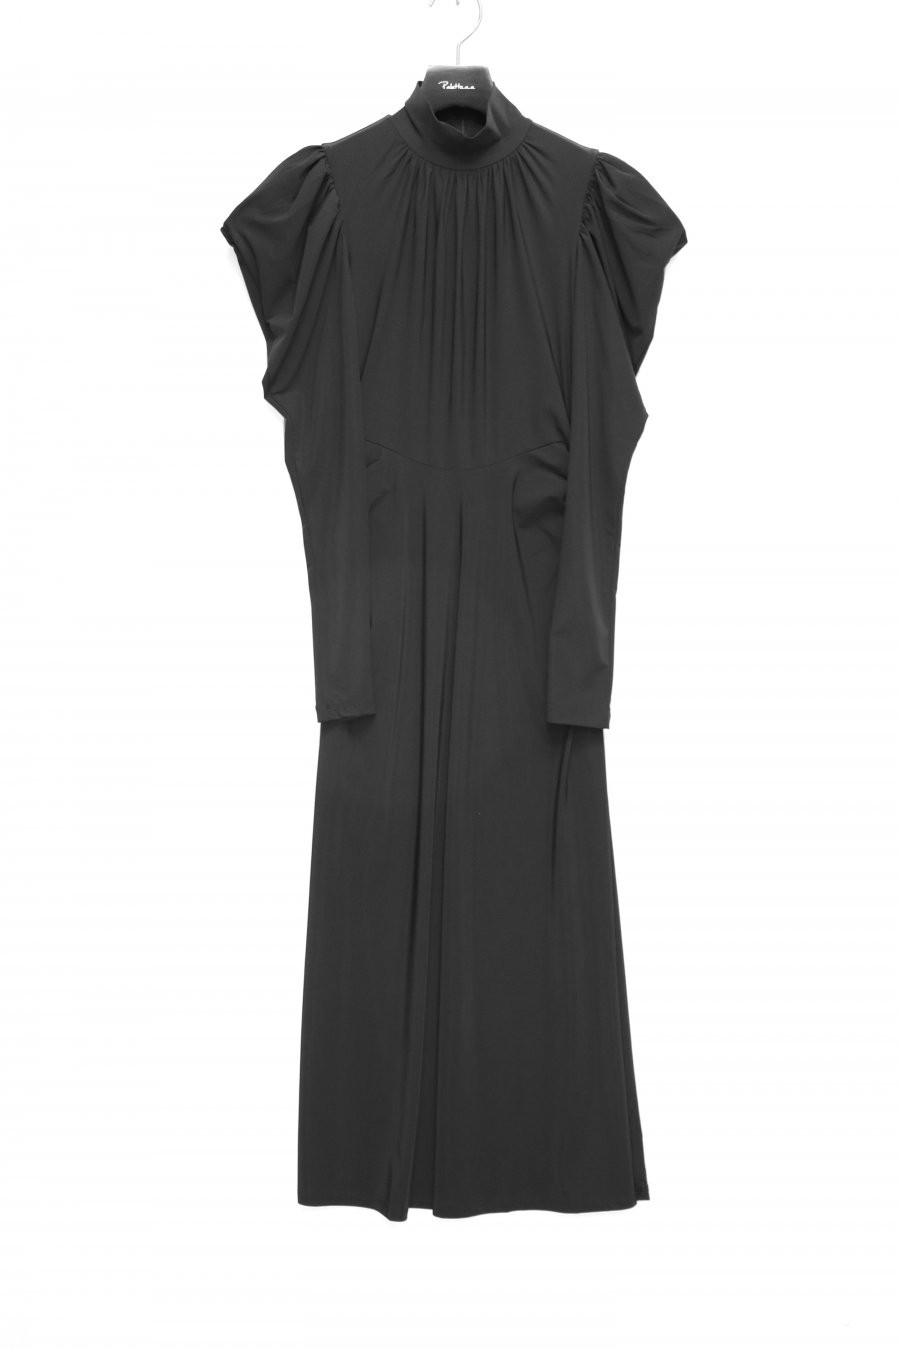 FETICO  Gathered jersey Dress<img class='new_mark_img2' src='https://img.shop-pro.jp/img/new/icons15.gif' style='border:none;display:inline;margin:0px;padding:0px;width:auto;' />